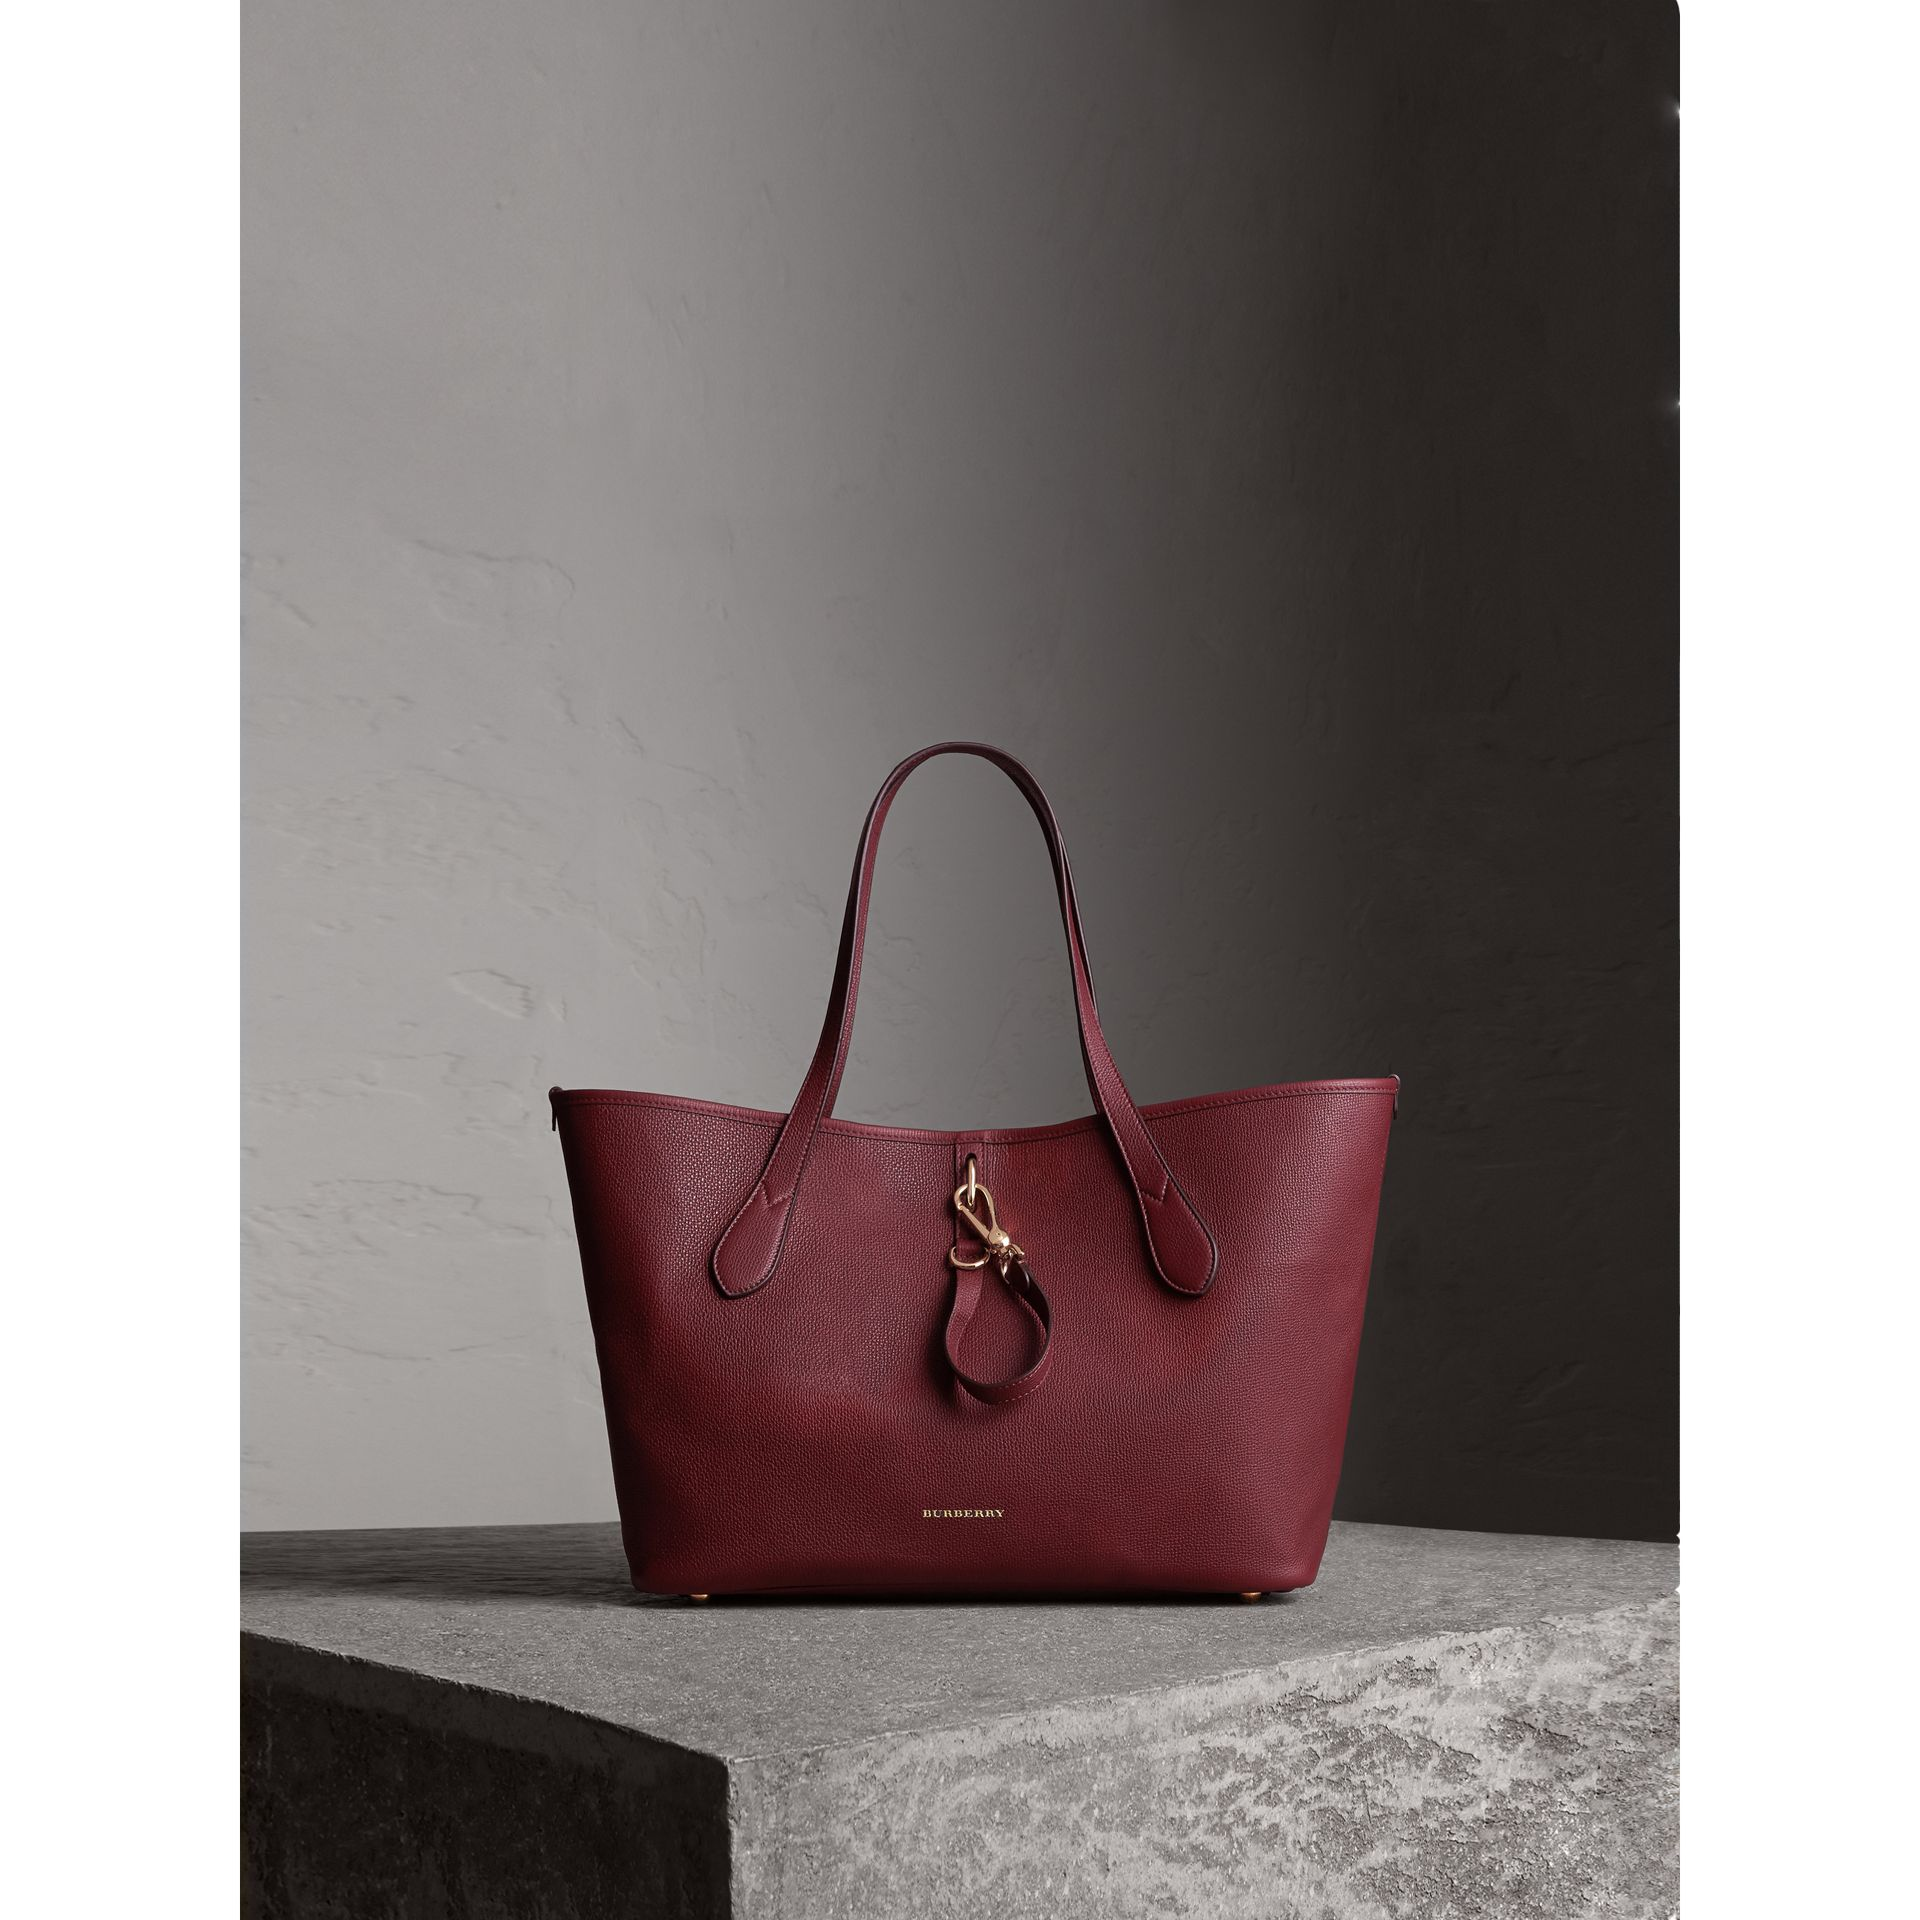 Medium Grainy Leather Tote Bag in Mahogany Red - Women | Burberry Hong Kong - gallery image 1